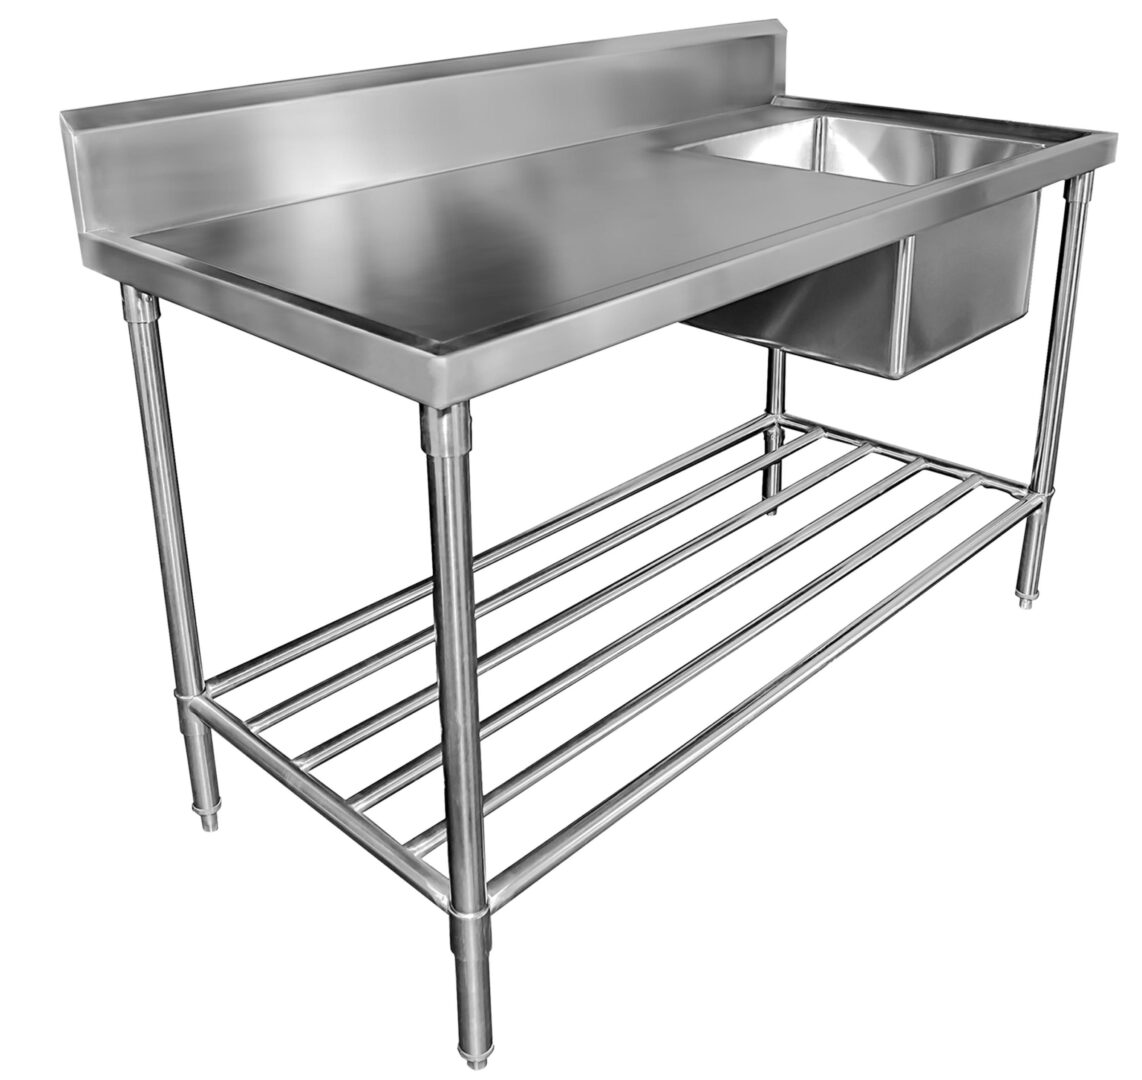 Simco SS1718L Sink Bench with Splashback -W1800 x D700 x H900